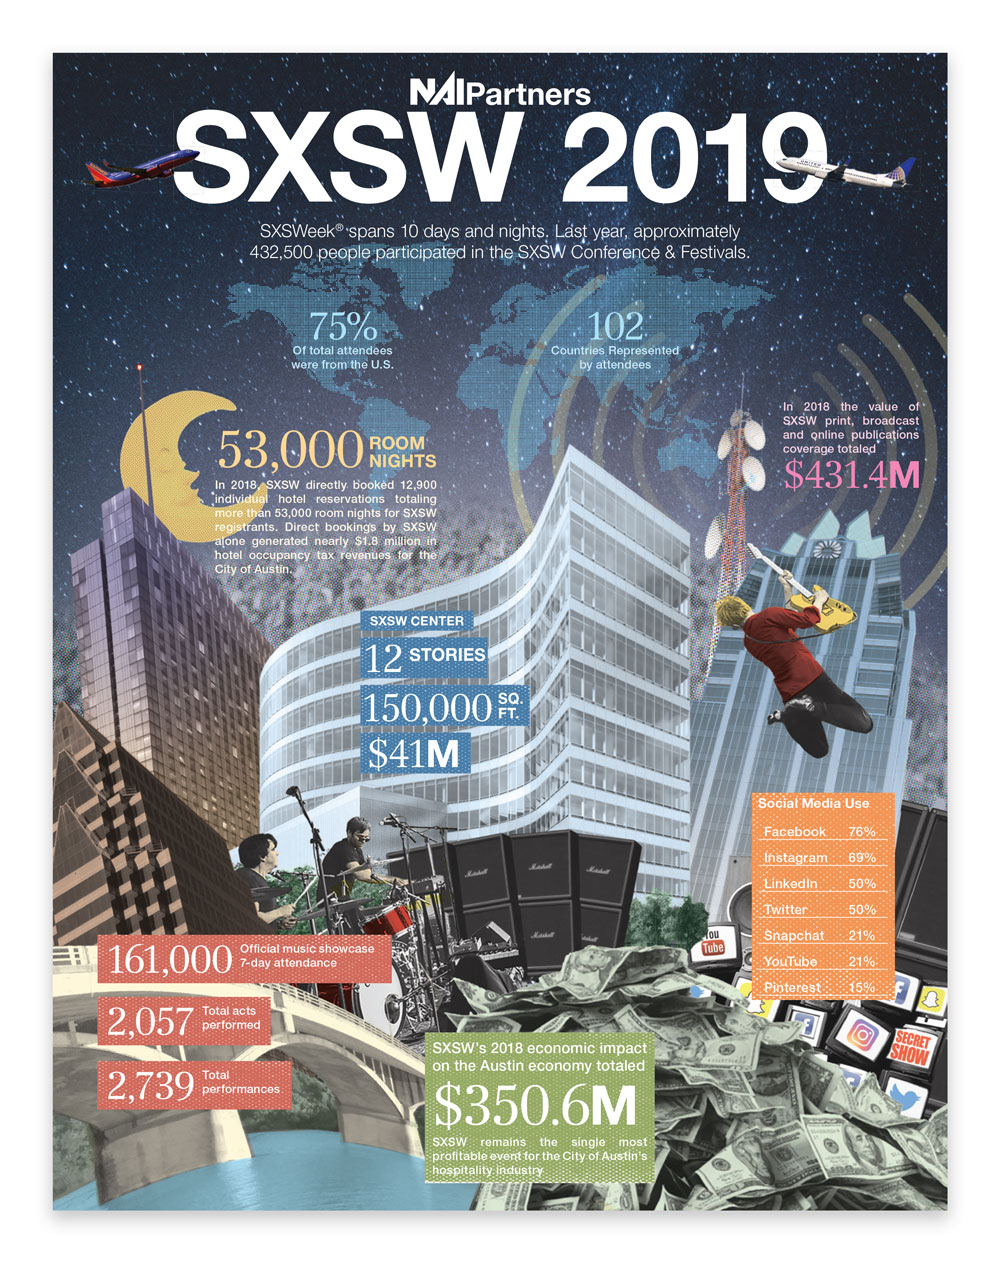 Not another SXSW infographic